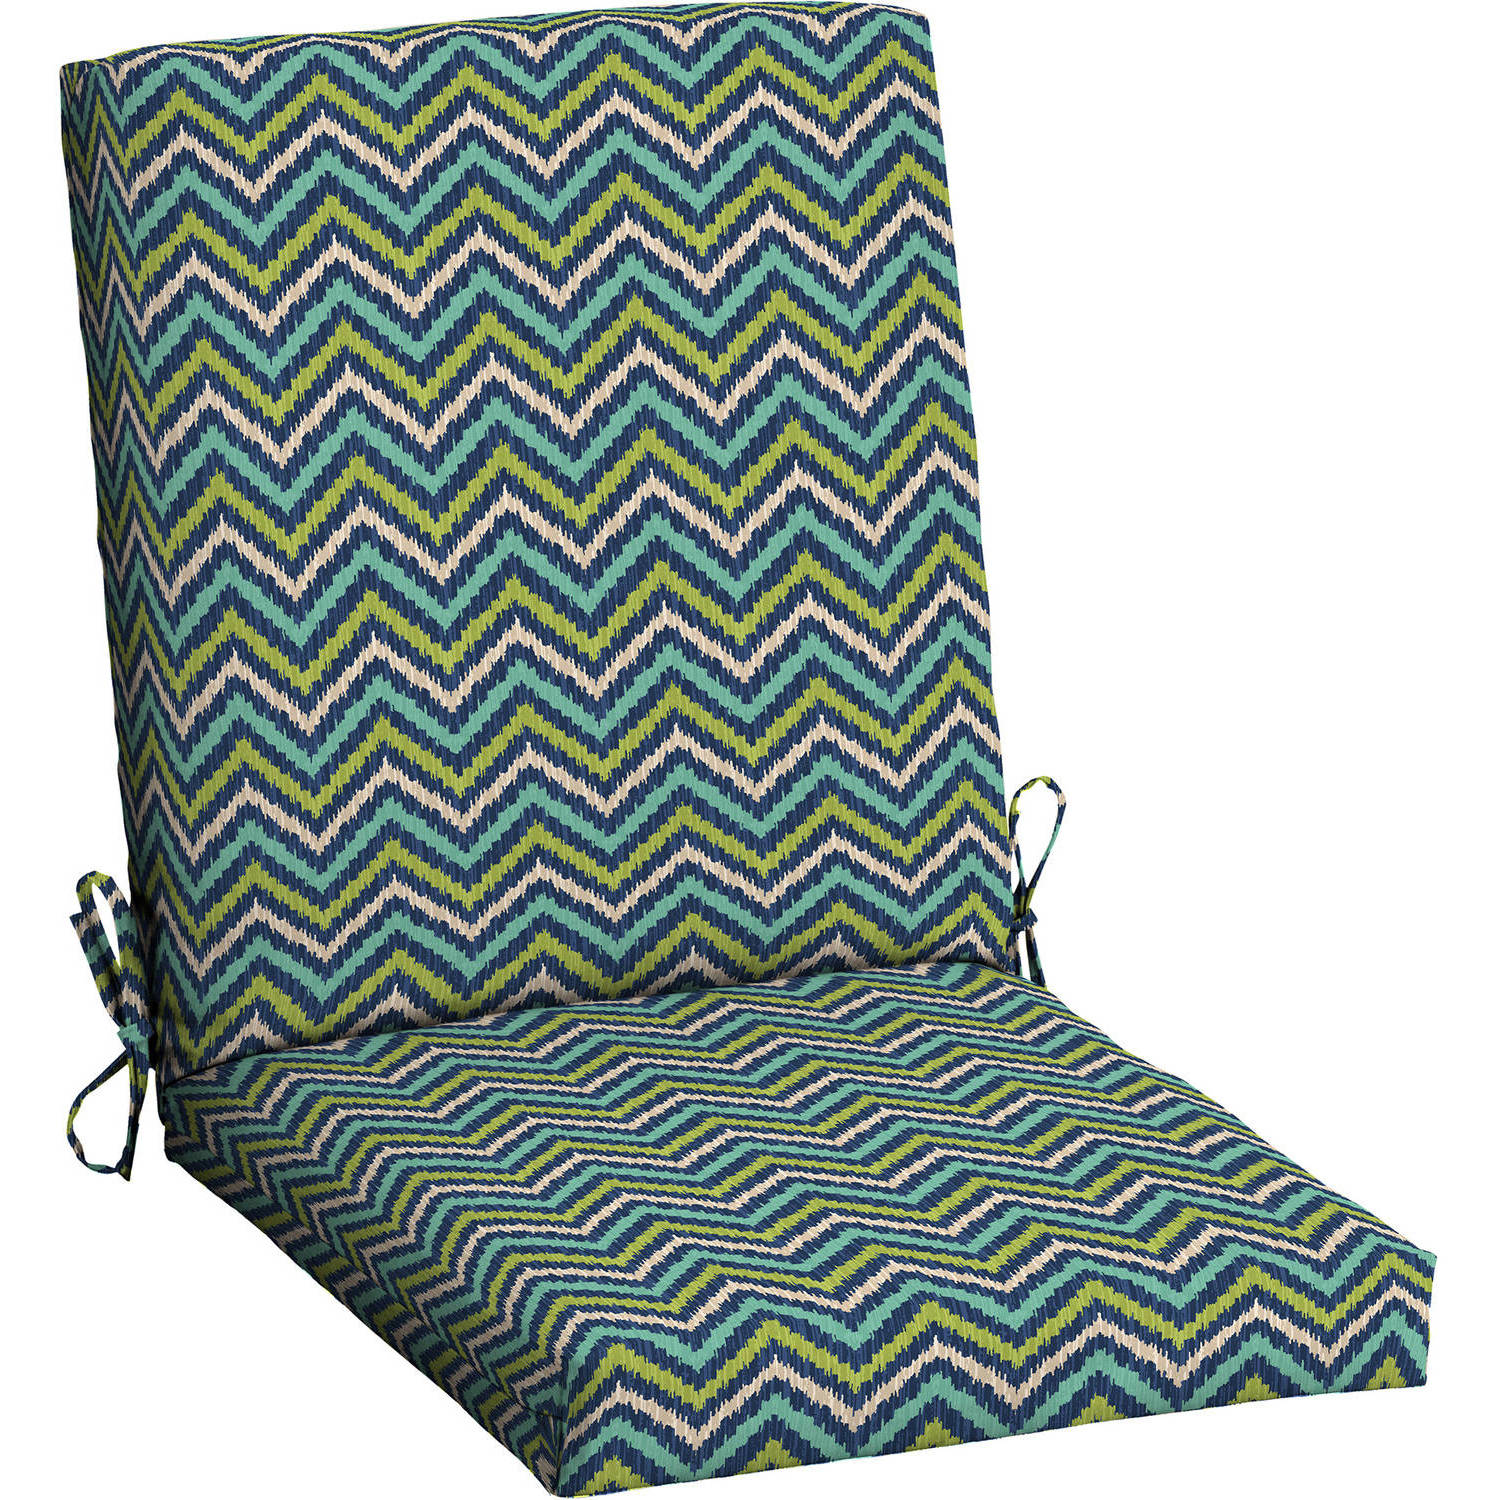 Mainstays Outdoor Patio Dining Chair Cushion, Teal Diamond Zigzag